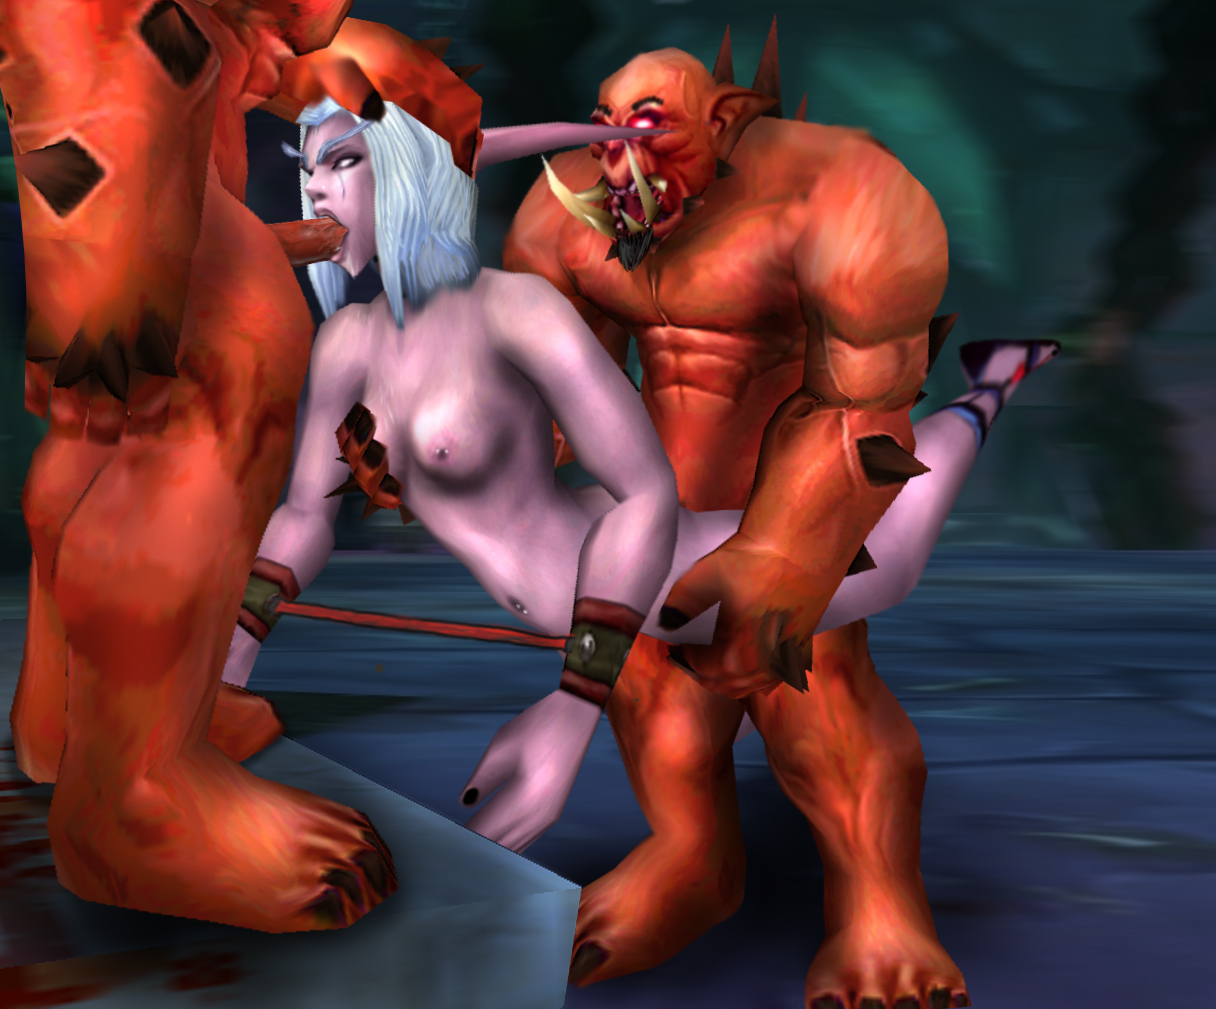 Warcraft sex mods sex scene